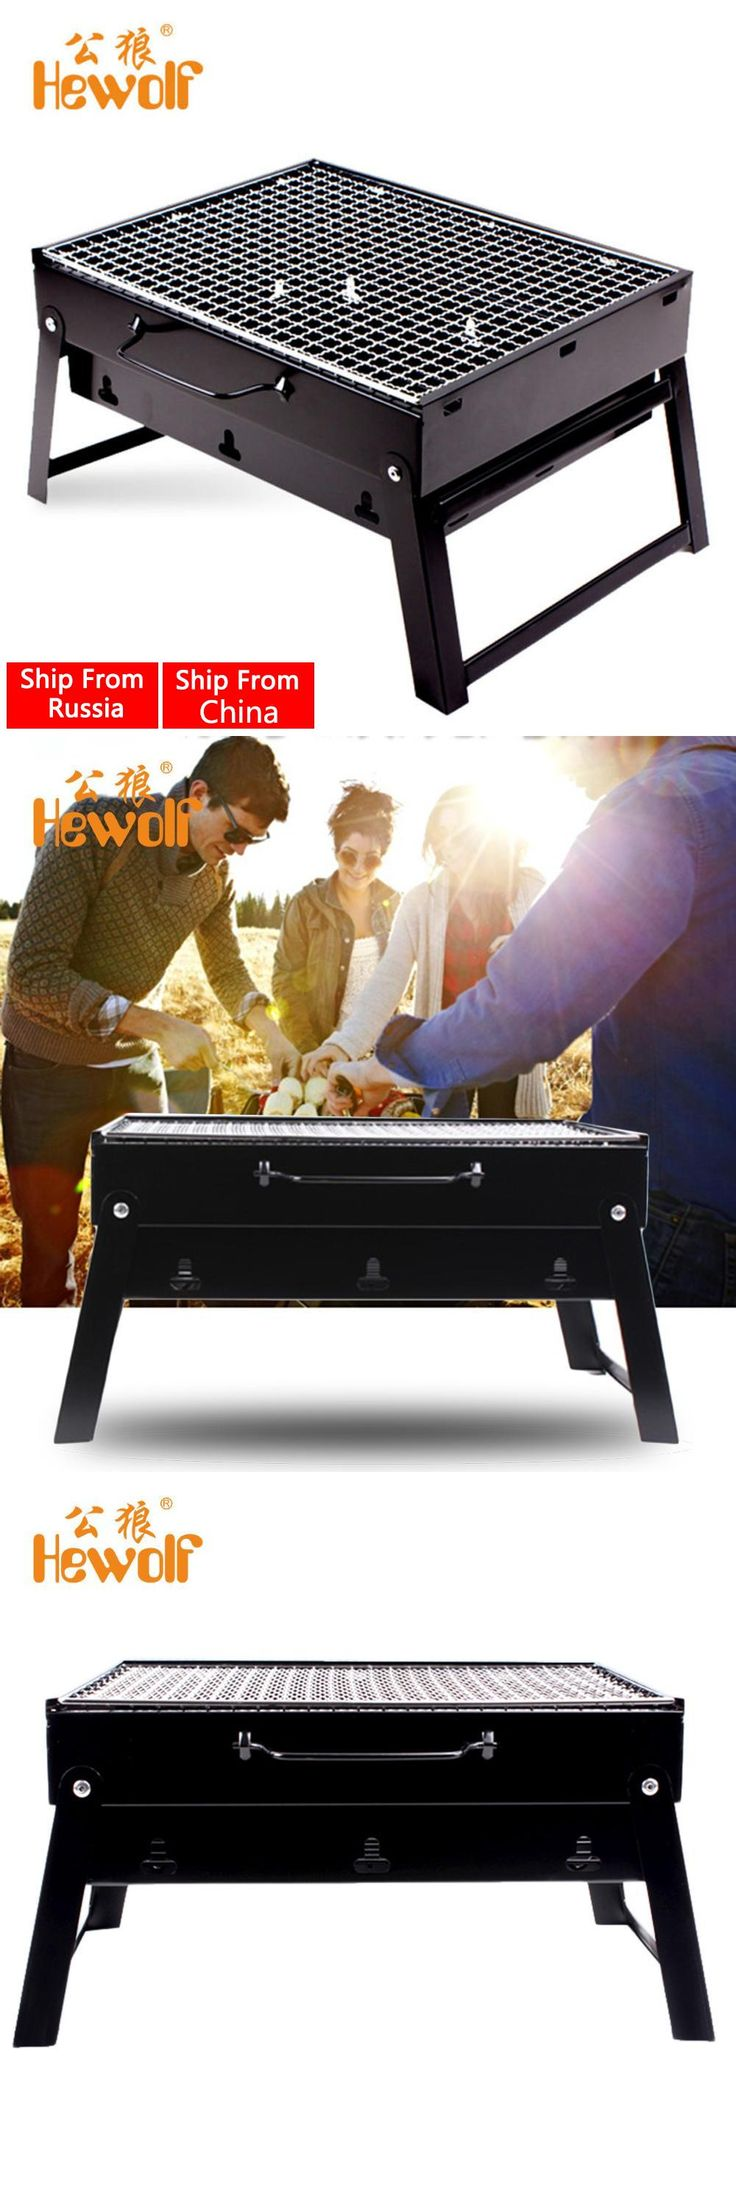 [Visit to Buy] Hewolf Outdoor Camping Cold Rolled Plate Burn Oven Picnic BBQ Charcoal Grill Portable Folding Stove Home Barbecue Carbon Ovens #Advertisement